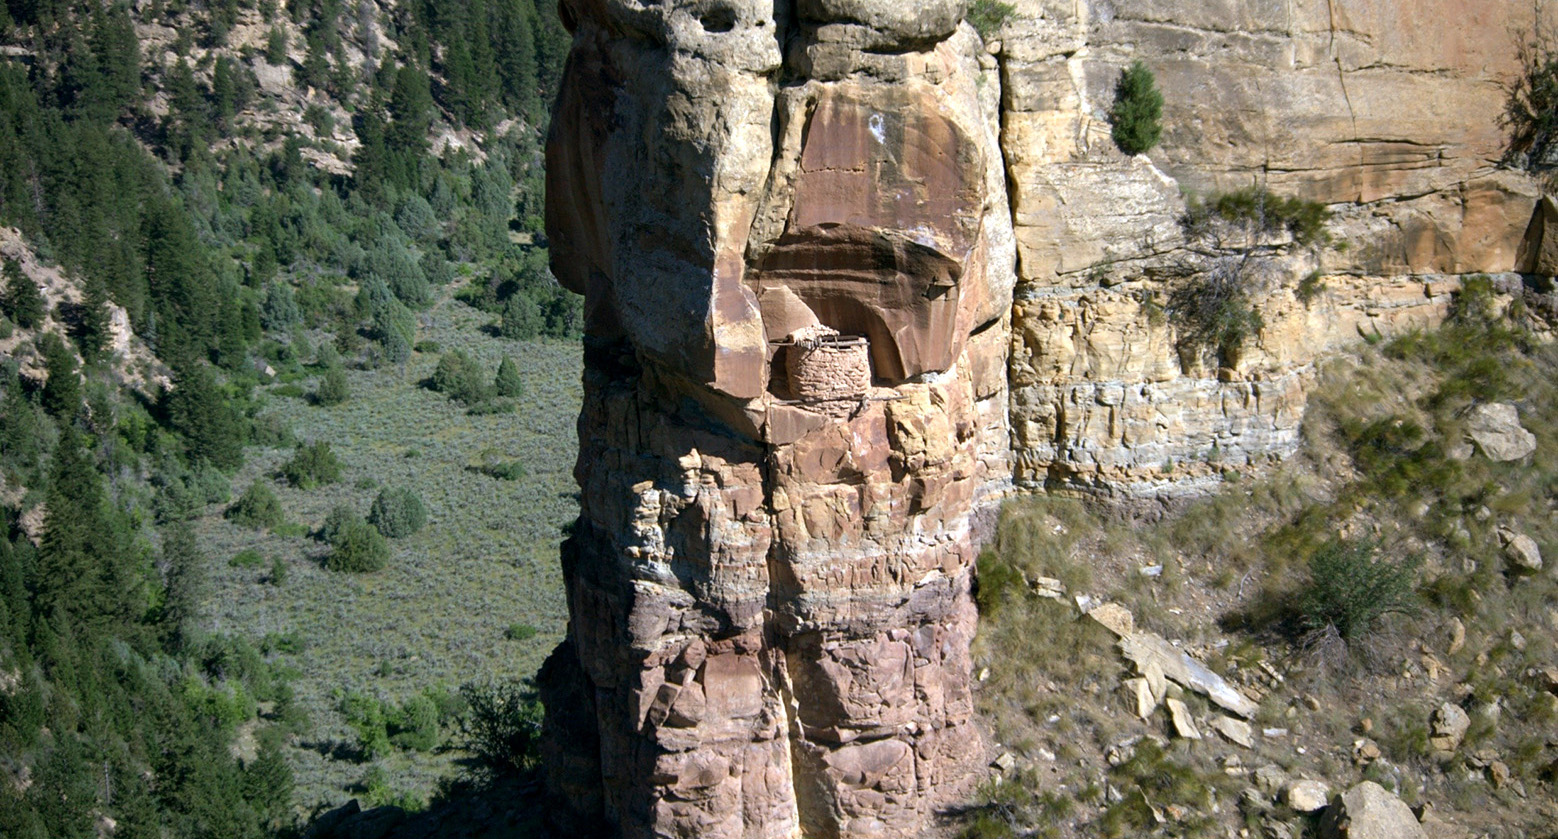 [image] Hide Your Stuff in Plain Sight: Up a 1,000-Foot Rock Face